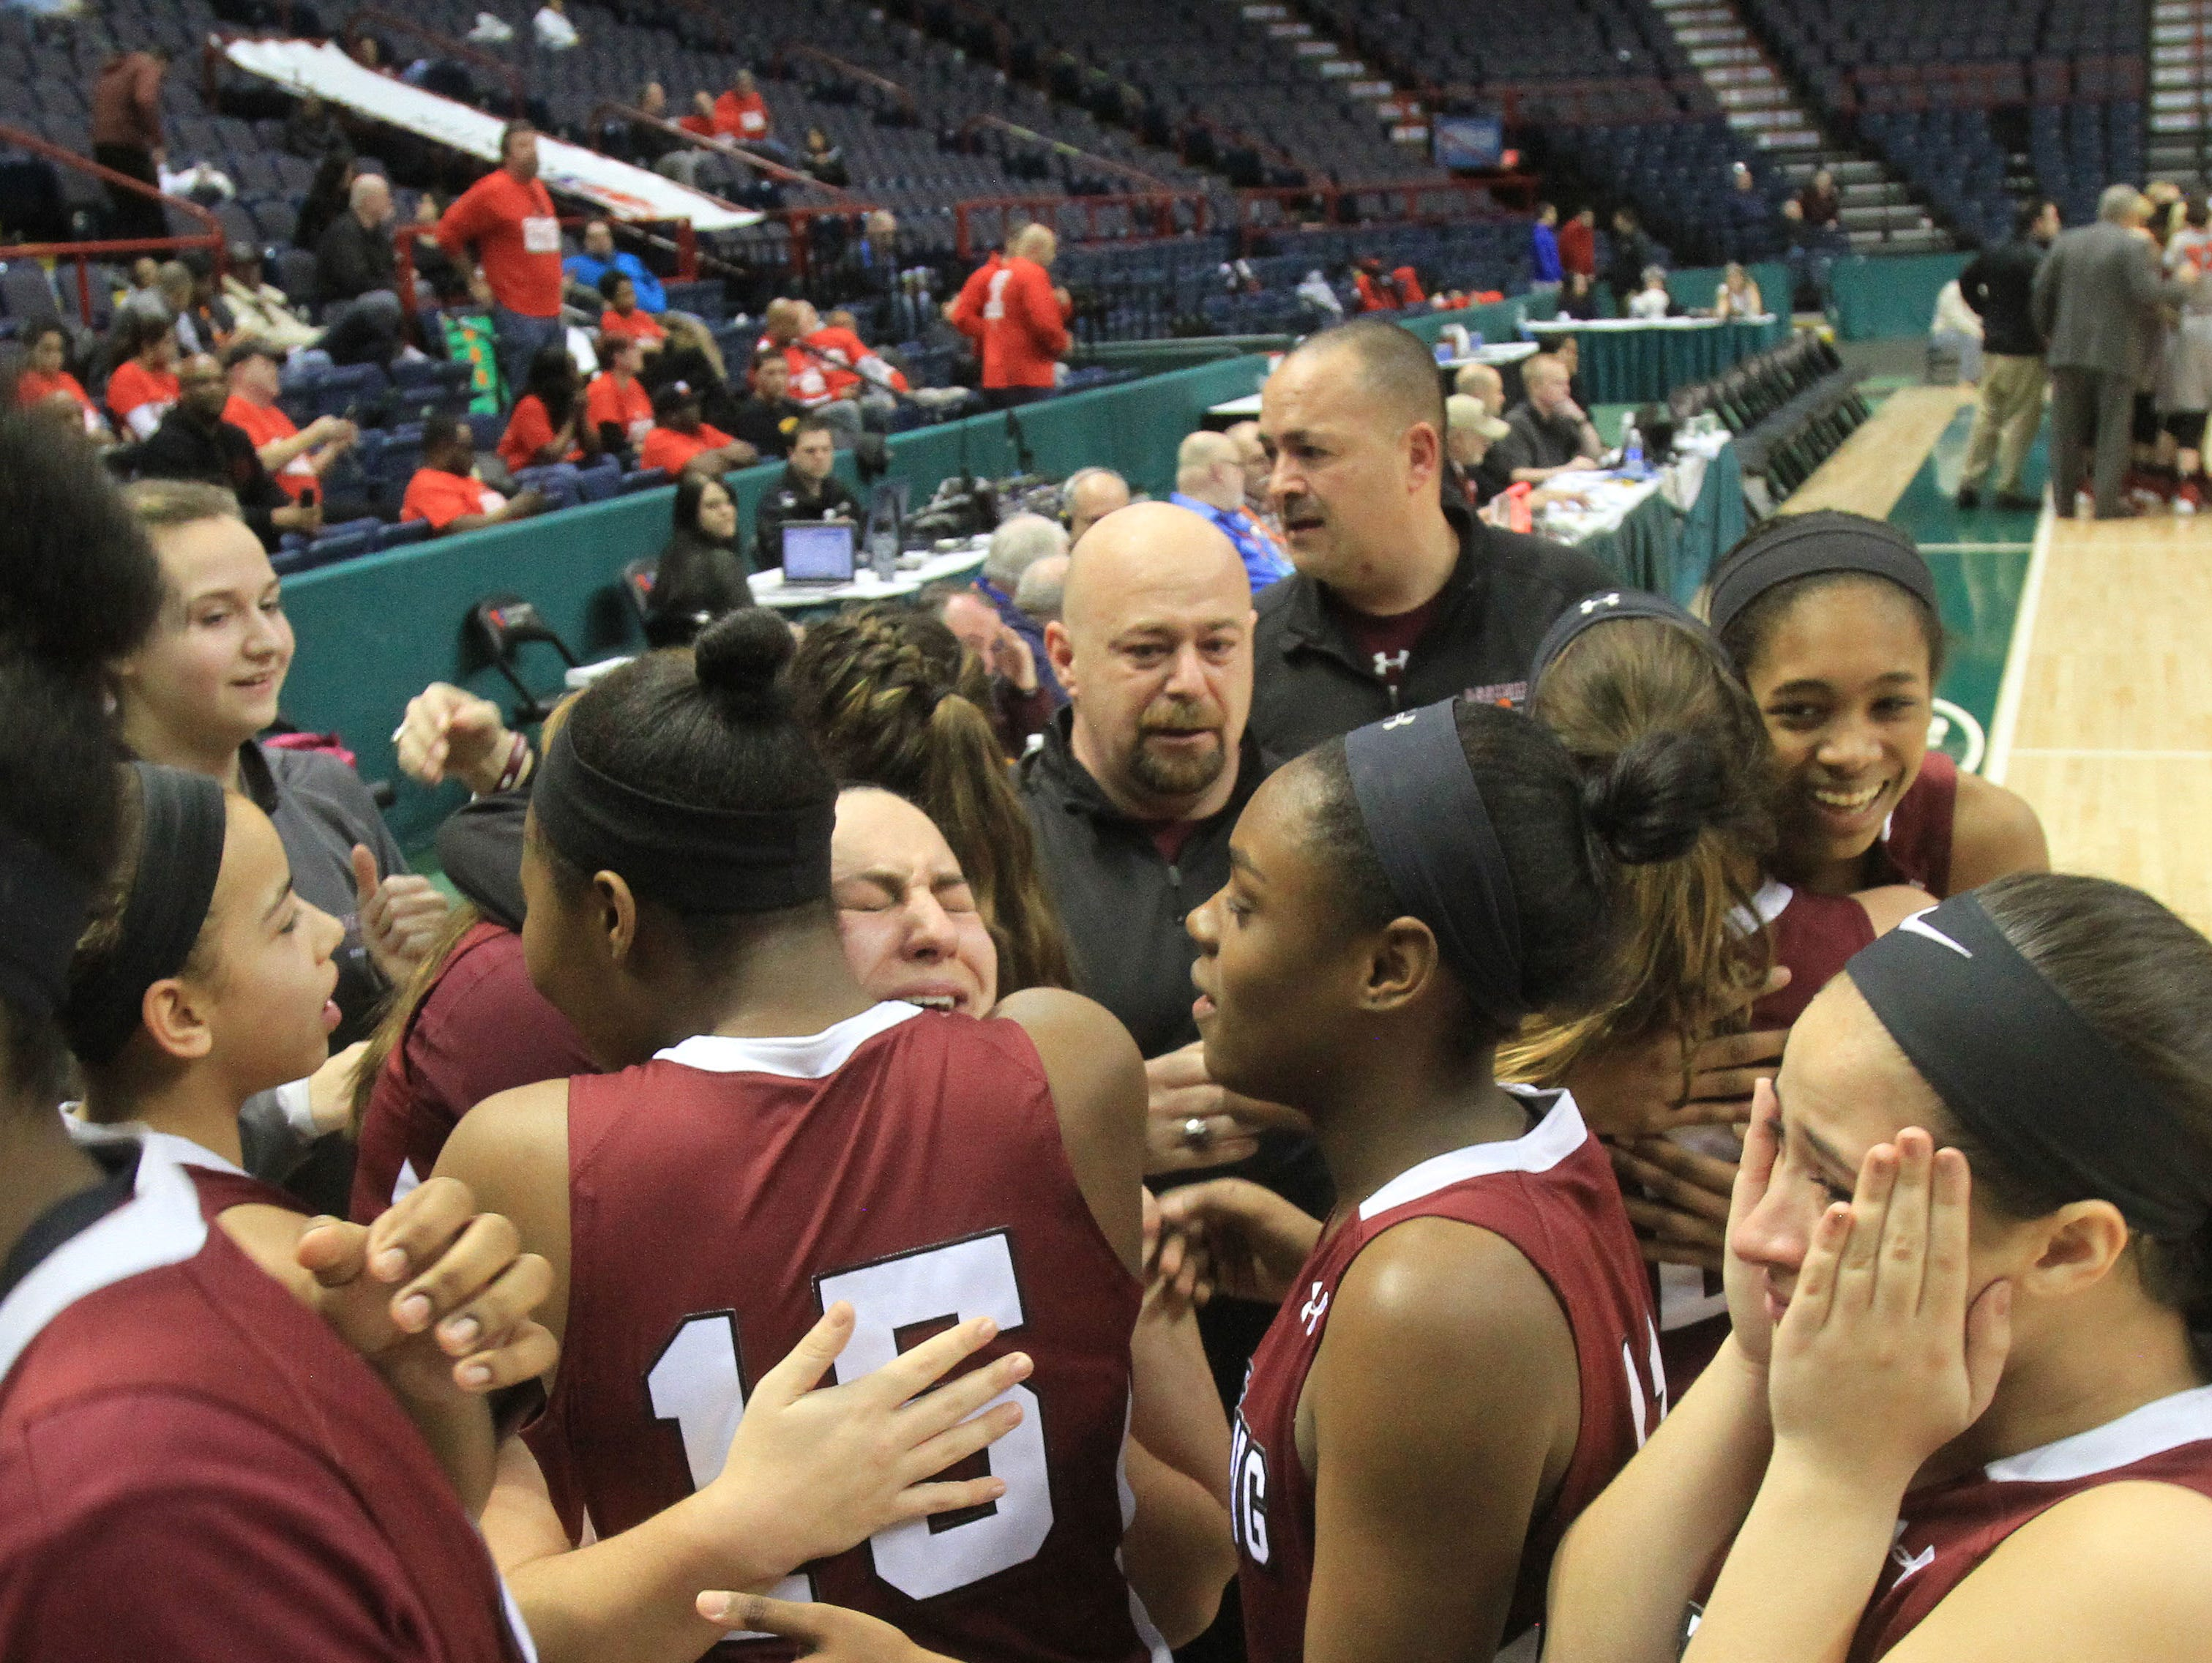 Ossining defeated Long Island Lutheran 64-54 in the girls Class A final of the New York State Federation Tournament of Champions at the Times Union Center in Albany March 19, 2016.